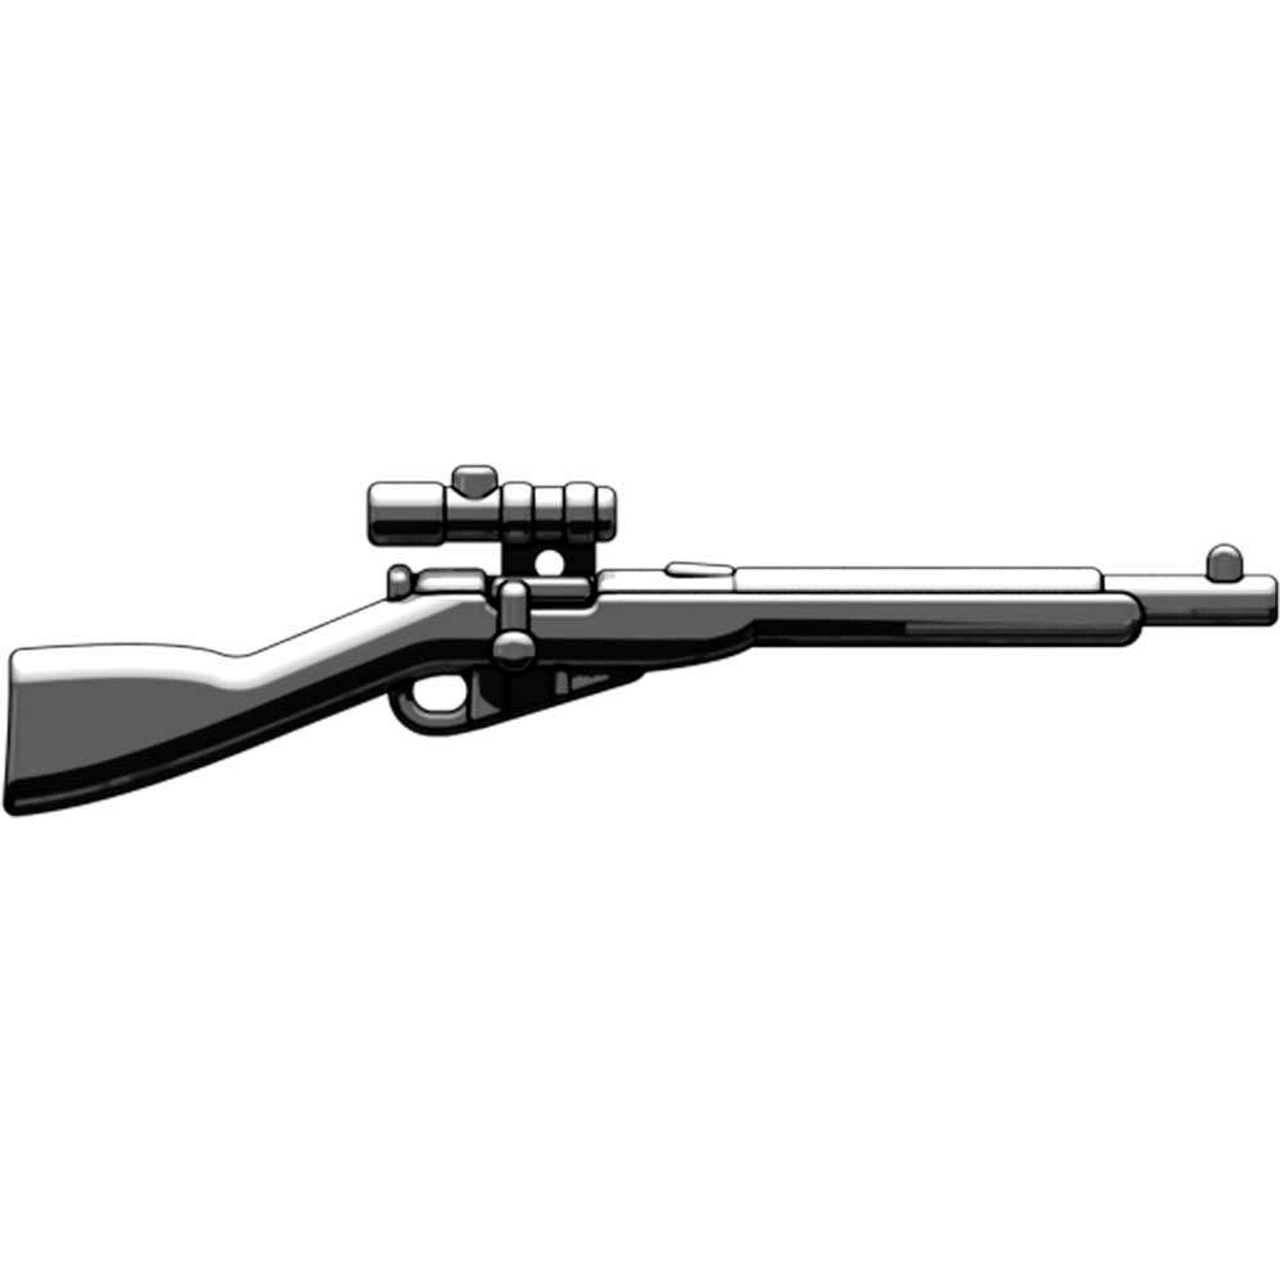 BrickArms Weapons Mosin Nagant with Scope 2.5-Inch [Black]